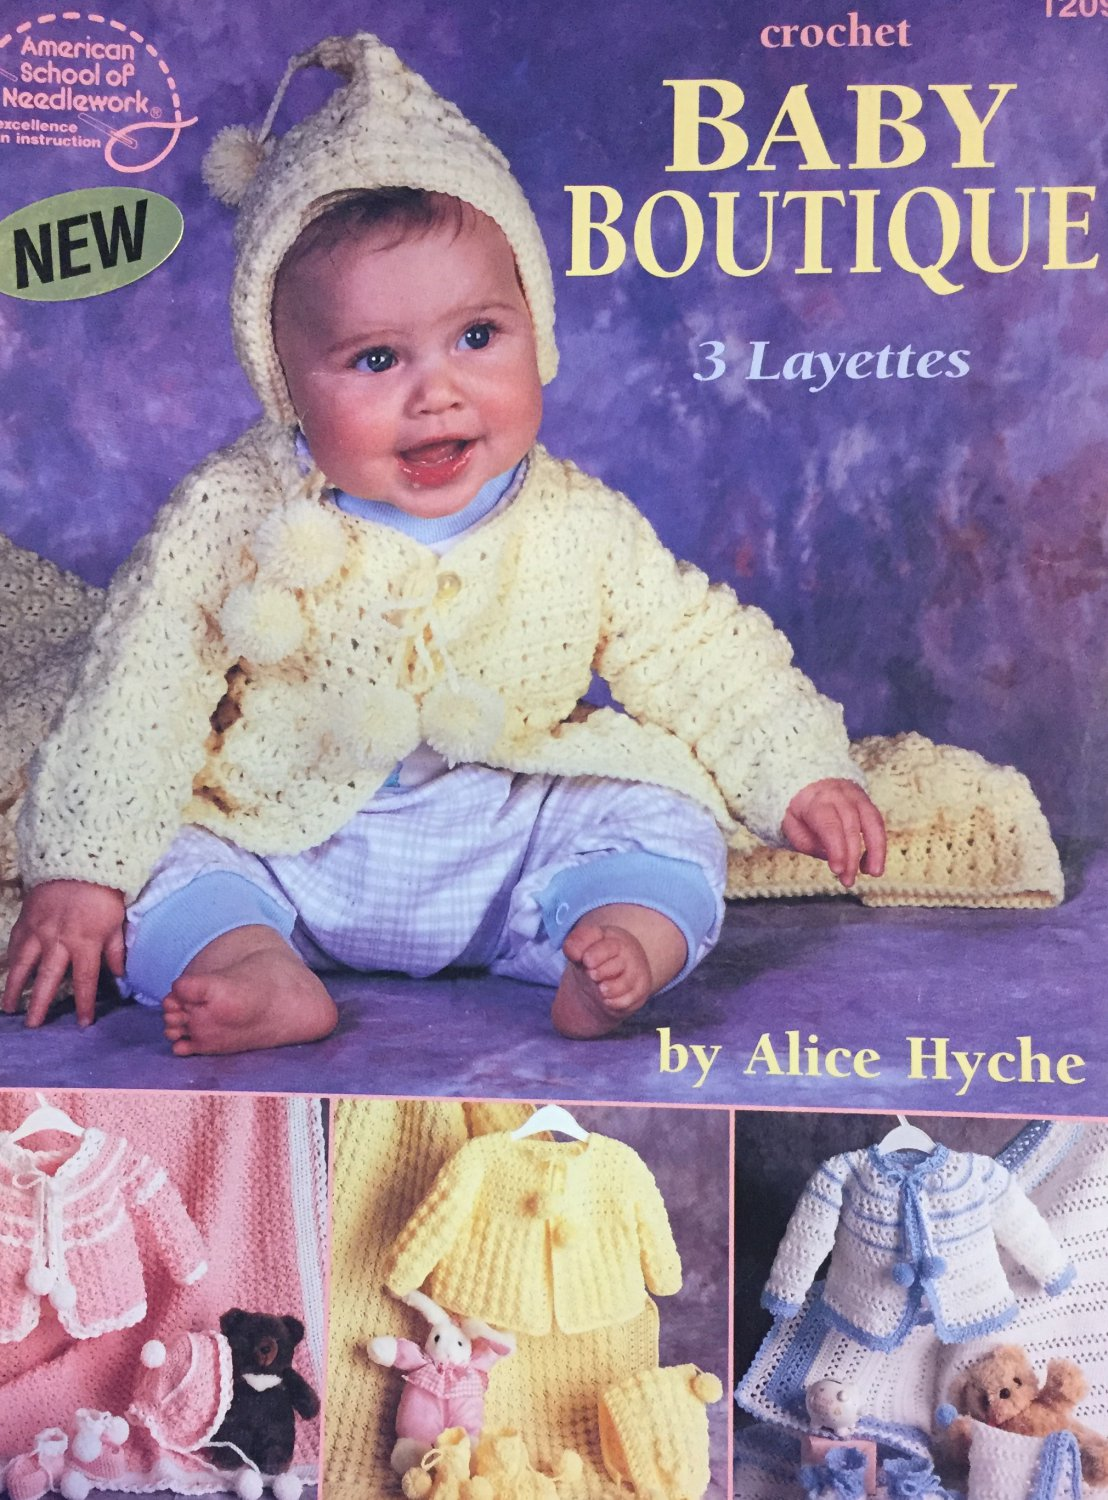 Baby Boutique Layette Sets American School of Needlework Crochet Pattern Booklet 1209